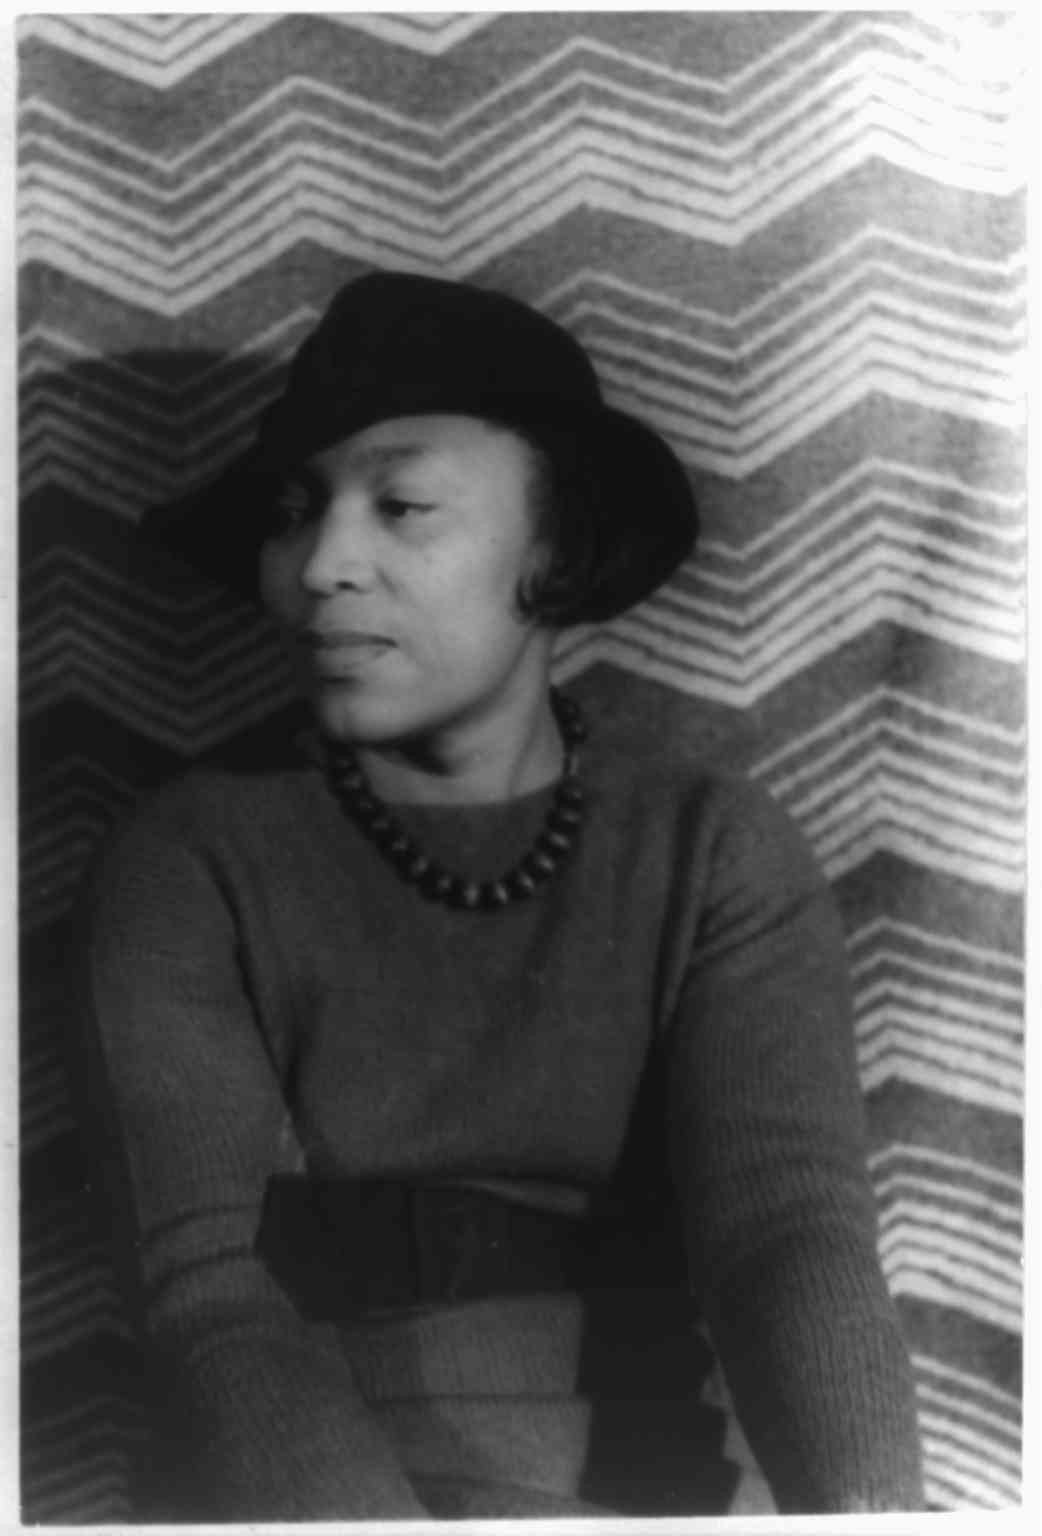 zora neale hurston Visit amazoncom's zora neale hurston page and shop for all zora neale hurston books check out pictures, bibliography, and biography of zora neale hurston.